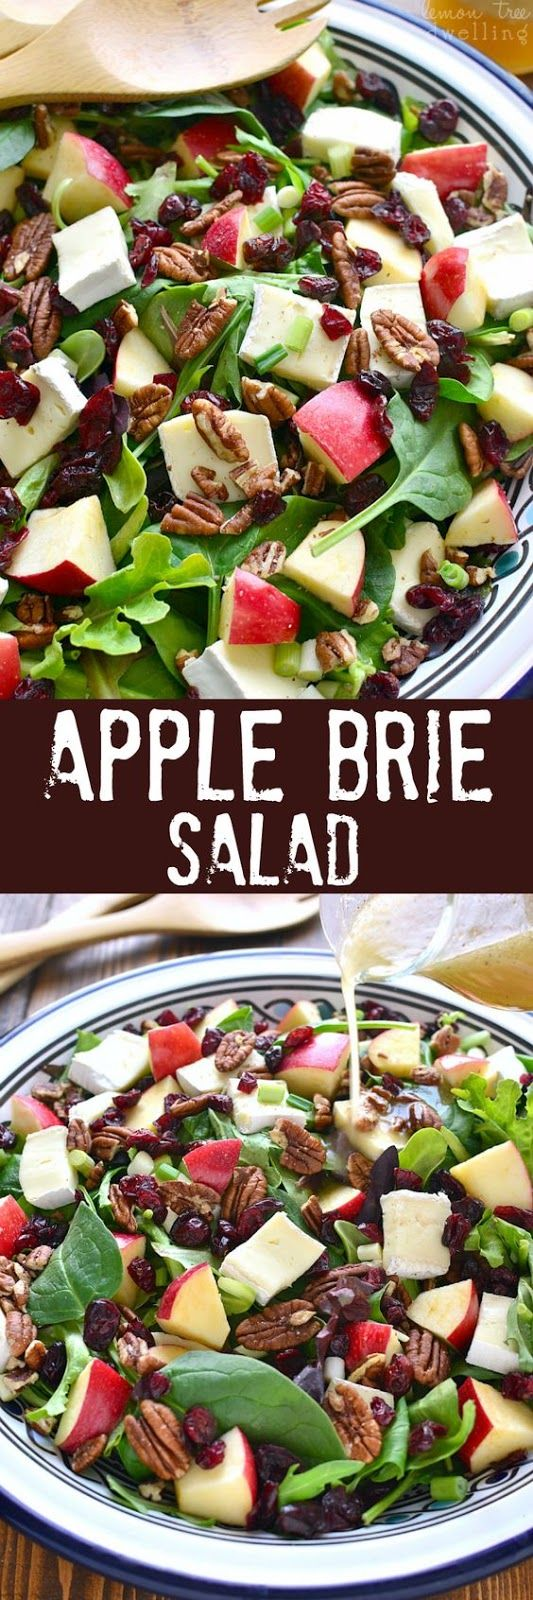 INGREDIENTS   1 bag (5-6 oz.) mixed greens   4 oz. brie cheese, cut in 1 inch pieces   1 large apple, cut in 1 inch pieces   ½ c. pecan...